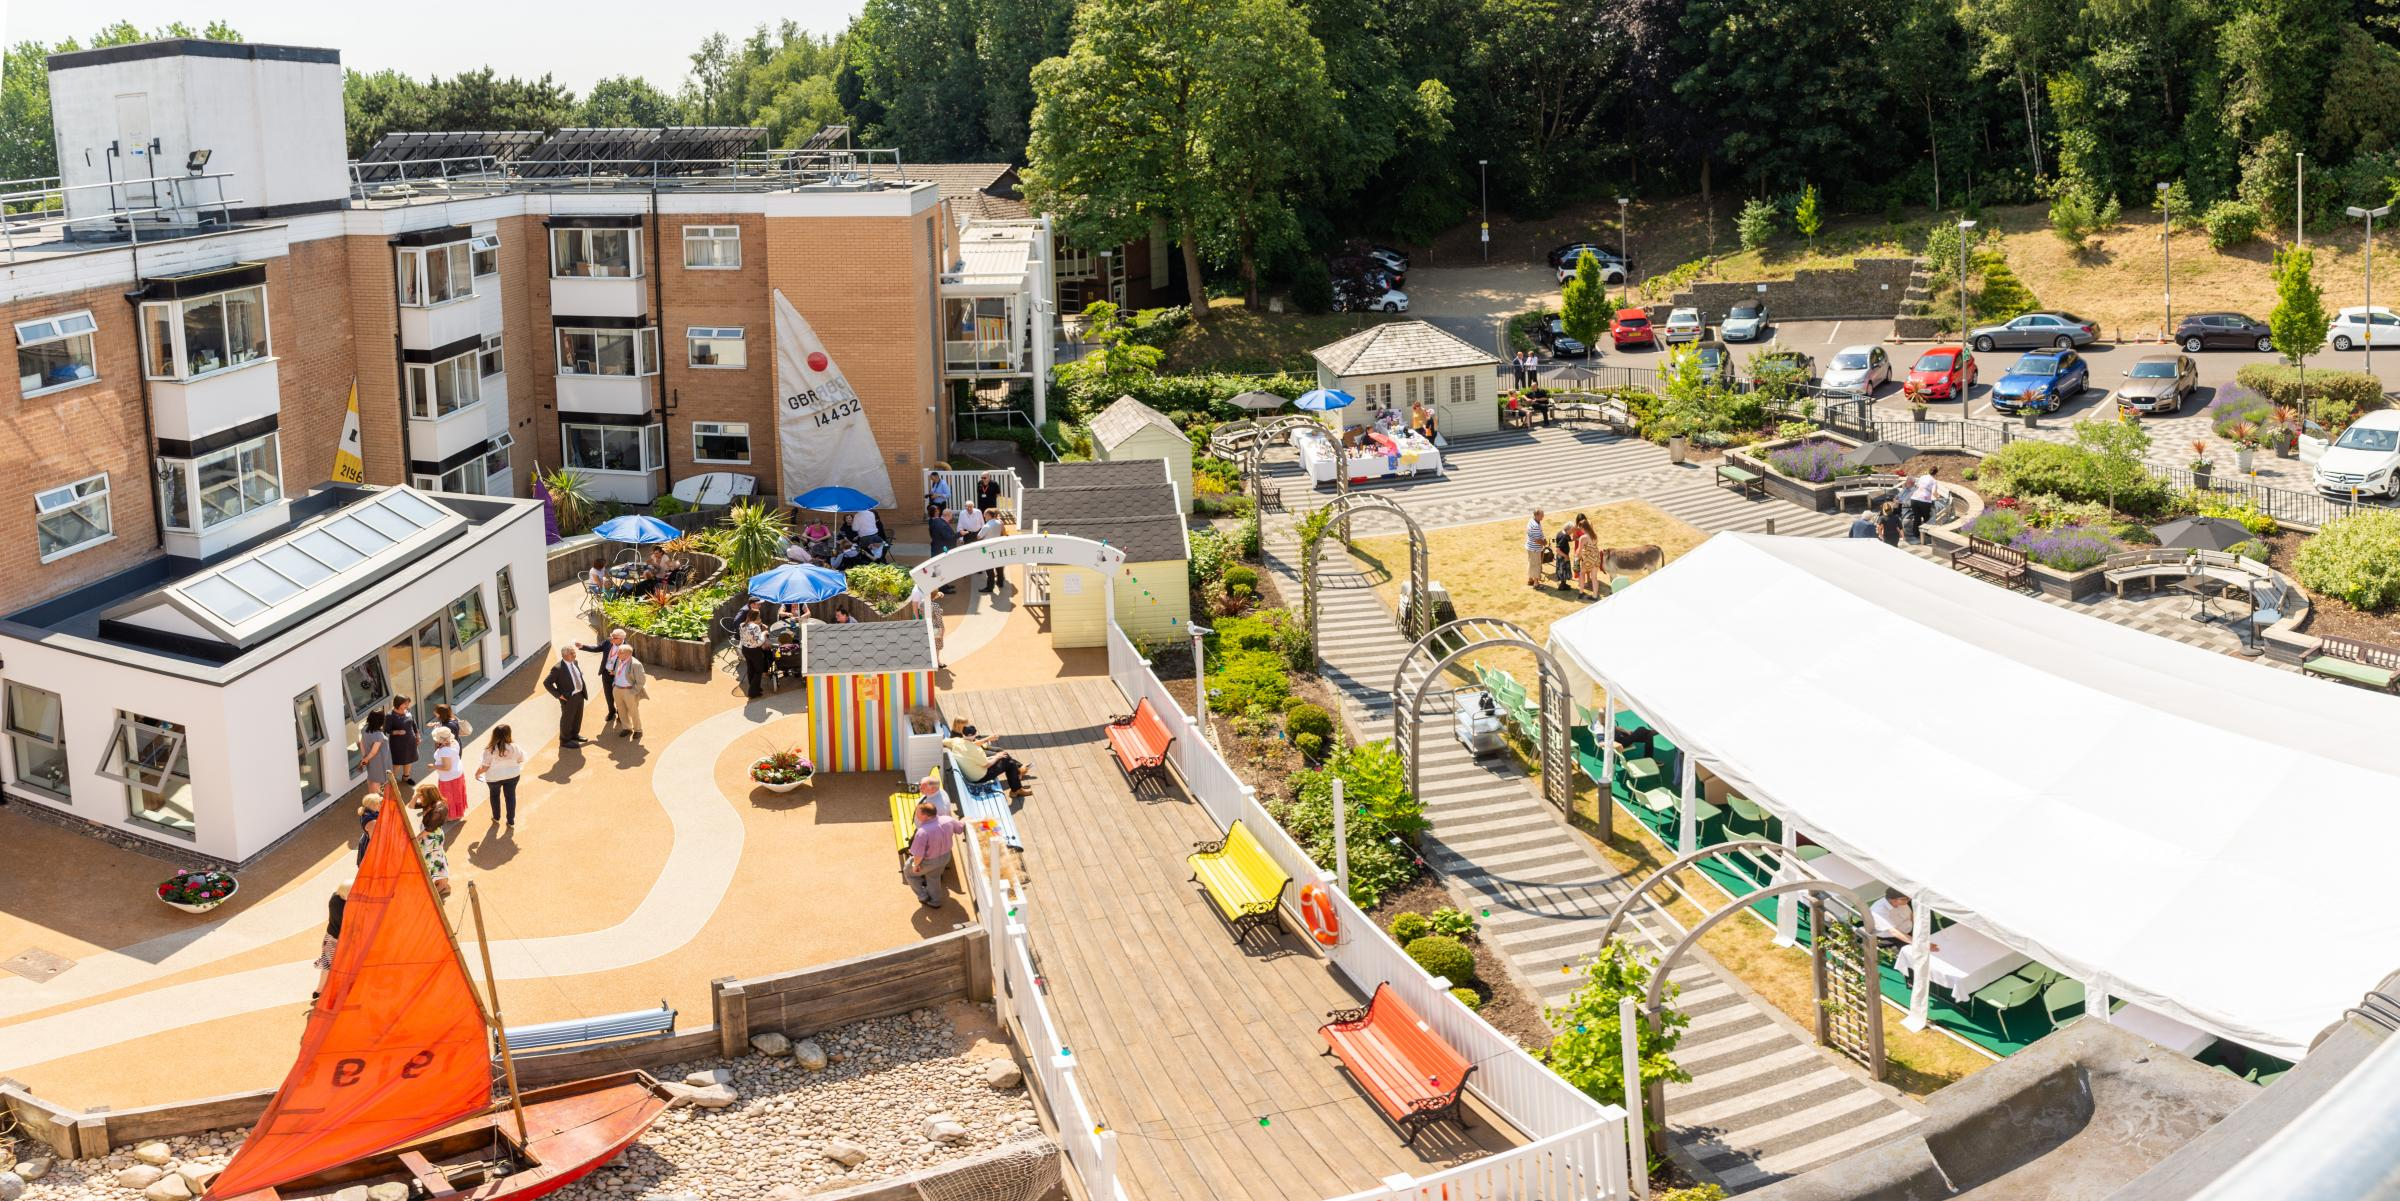 GARDEN: The Fed's seaside-themed dementia garden is up for a national award